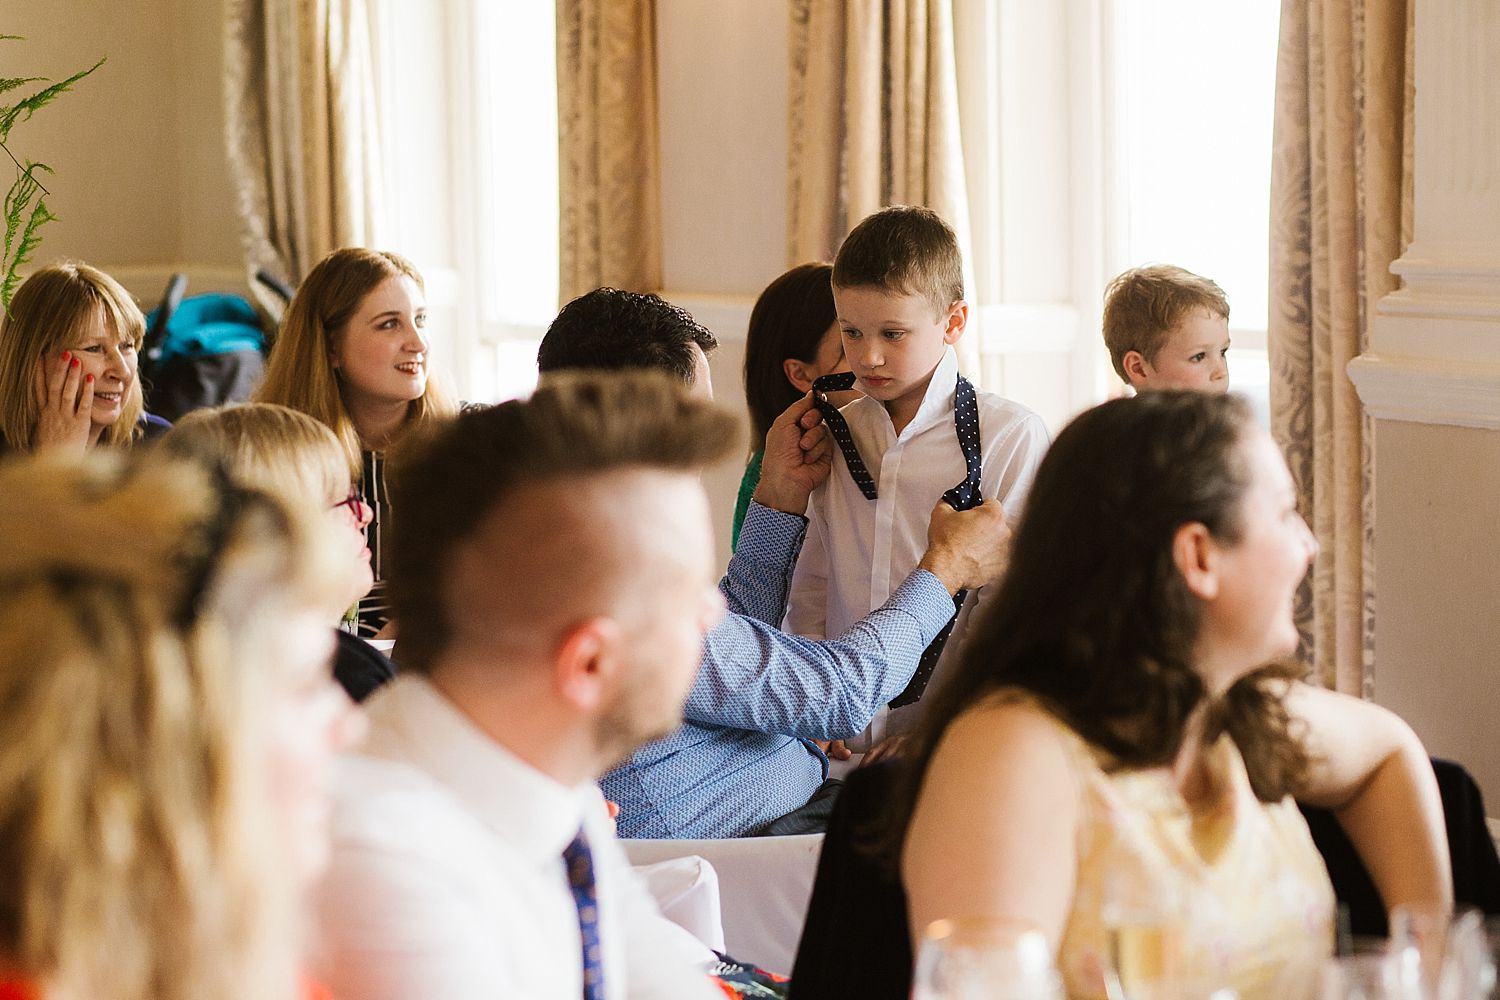 Guest adjusts young boy's tie during reception at Belsfield Hotel wedding